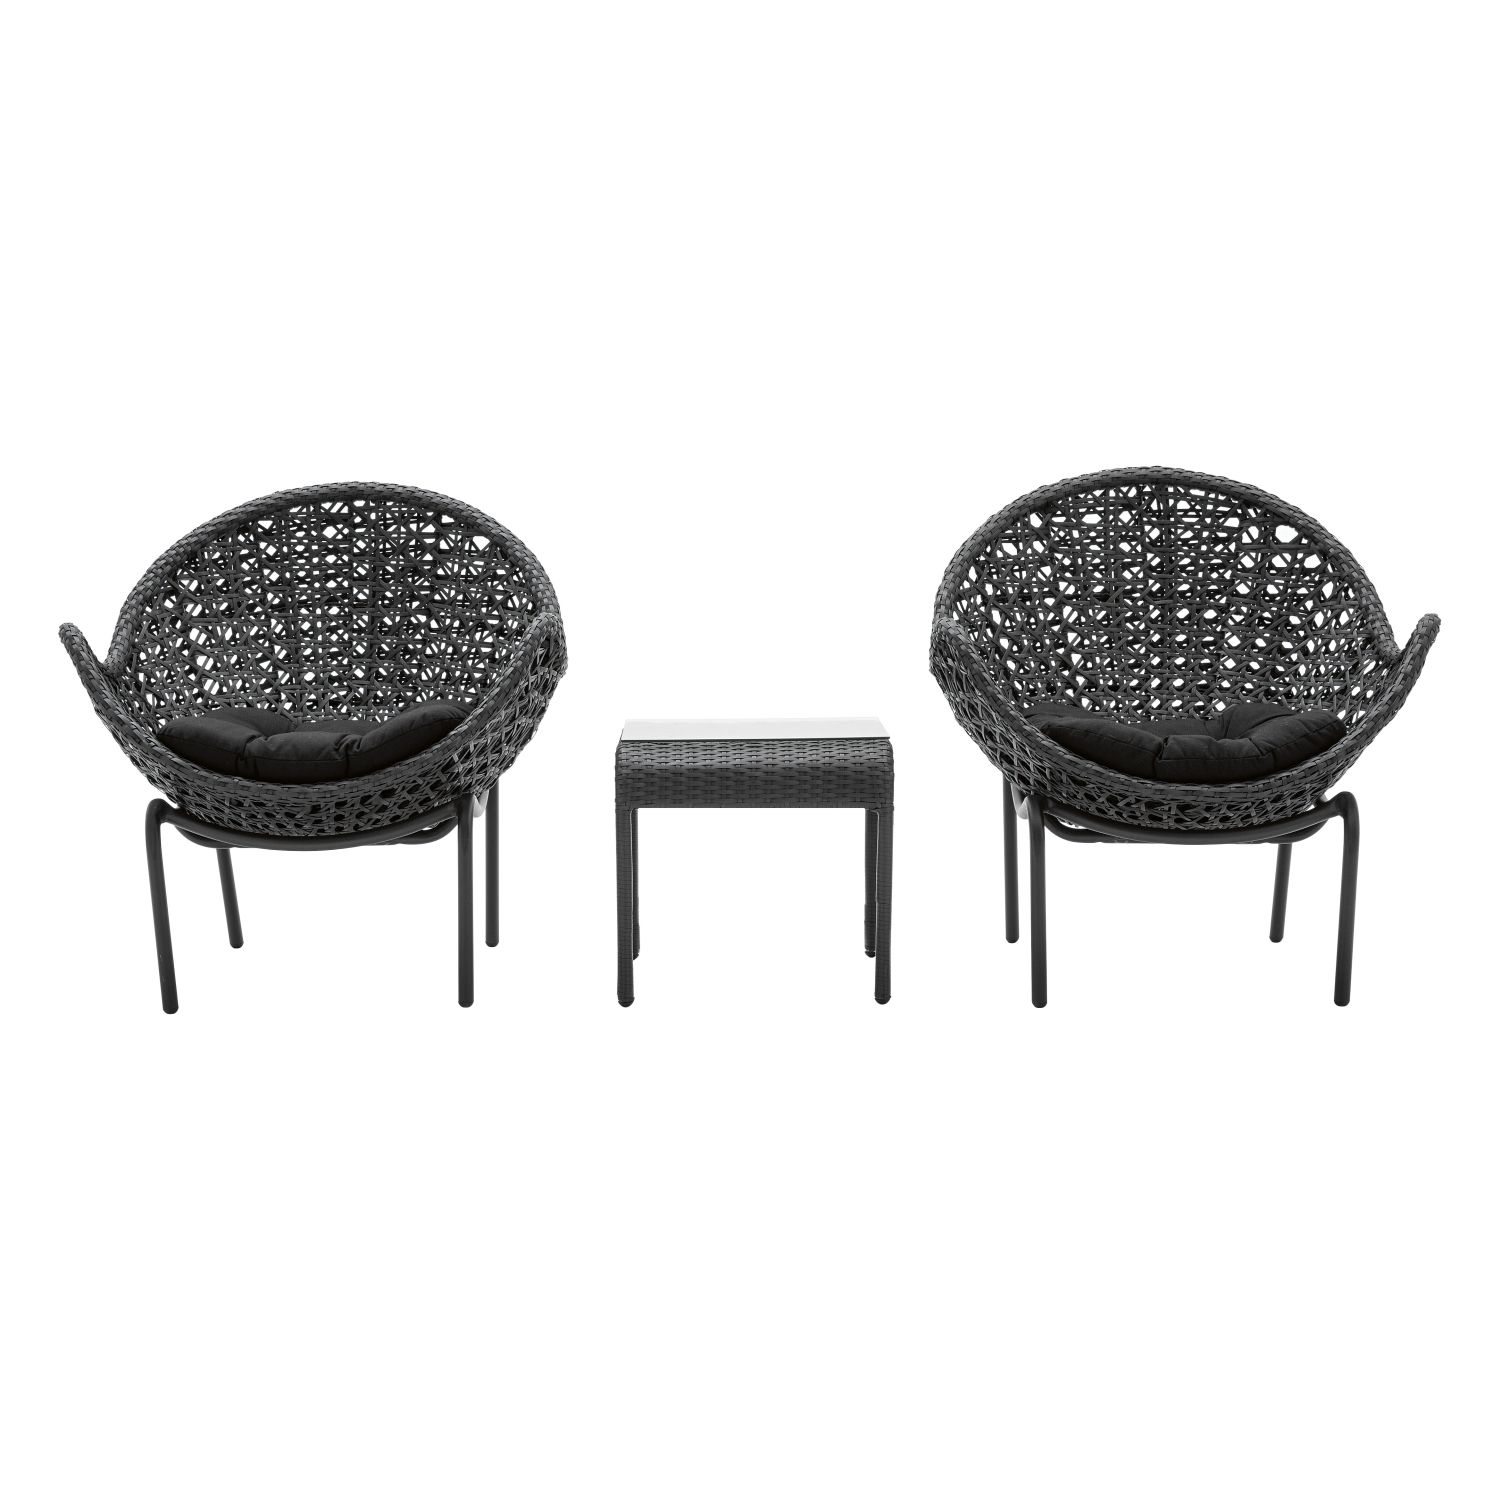 Hugo 3 Piece Chatting Set From Domayne Online 799 20